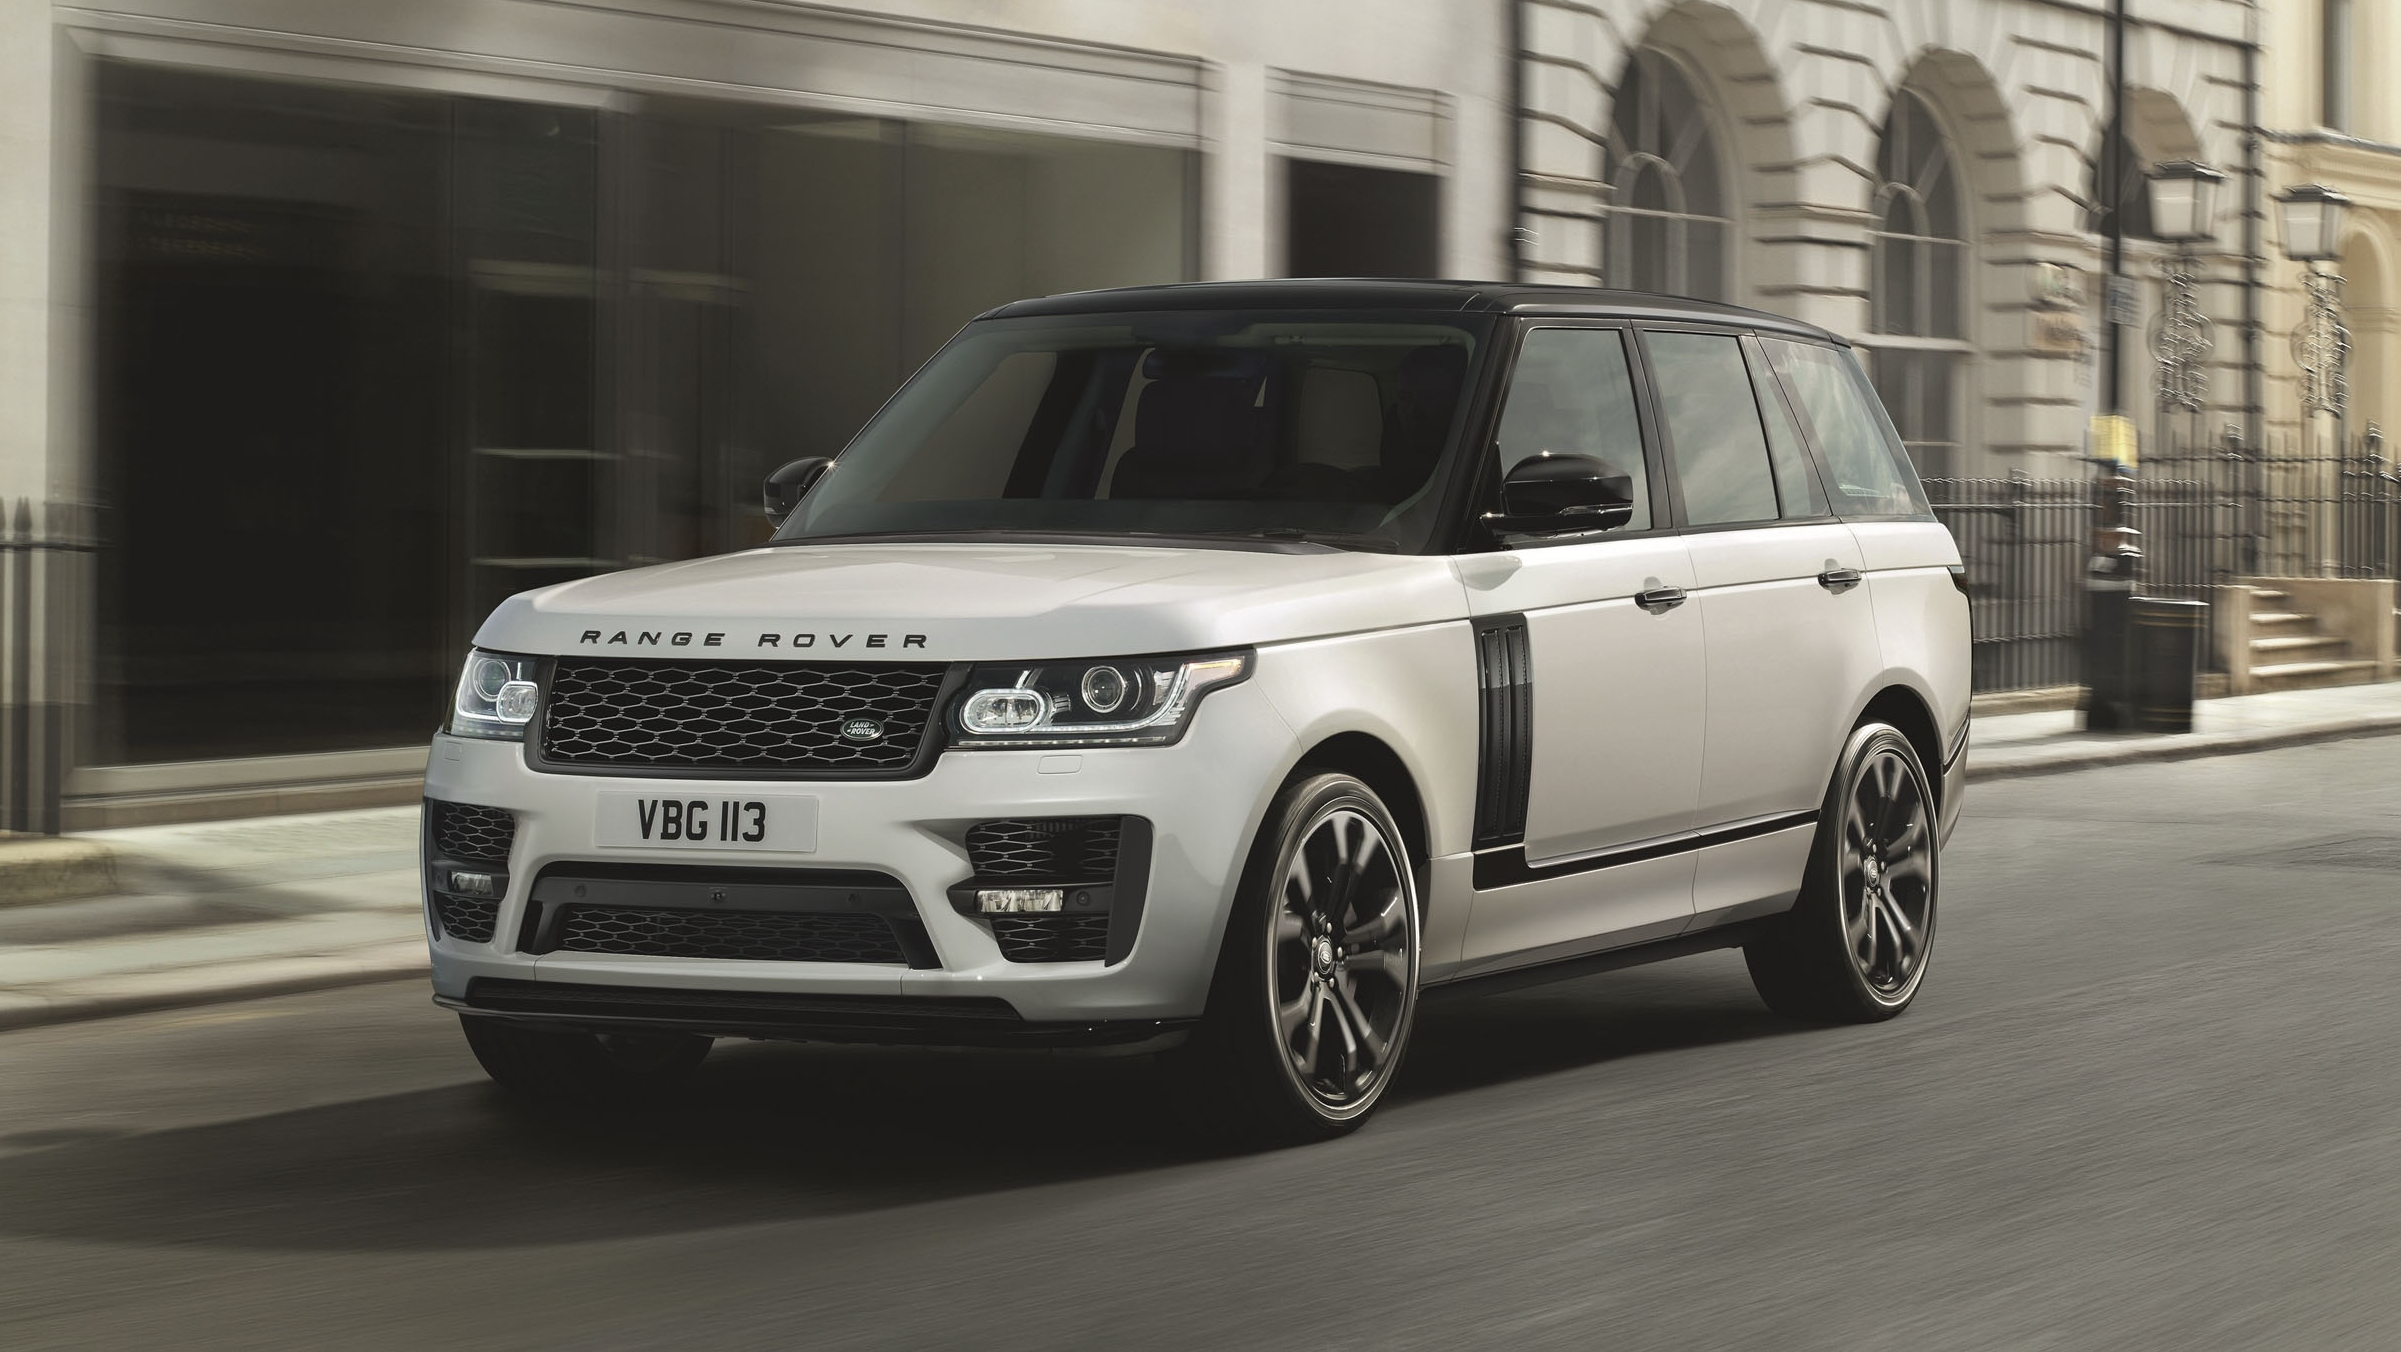 2017 Land Rover Range Rover Svo Design Pack Review